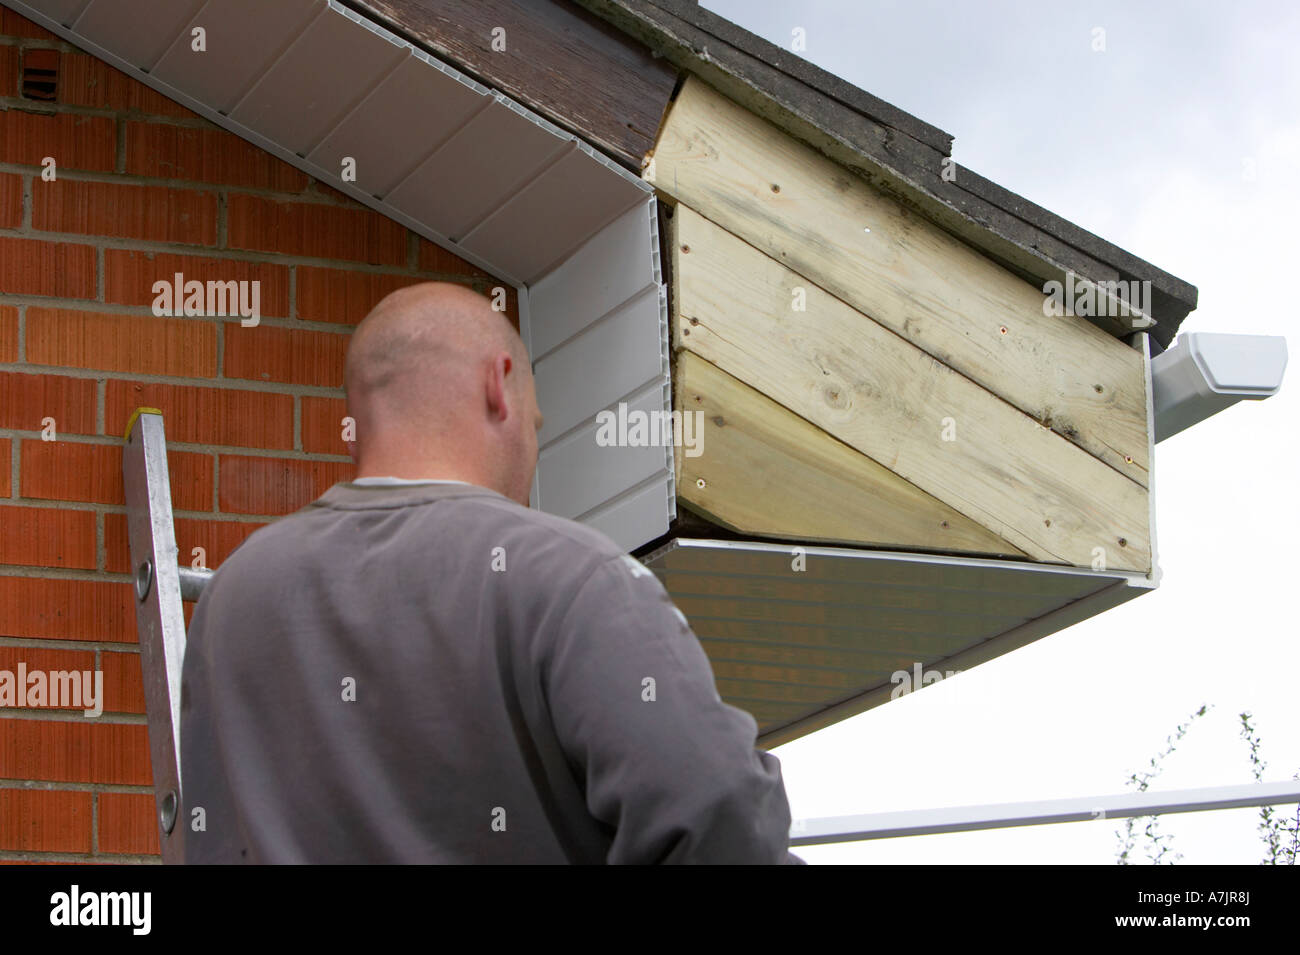 Shaven Headed Workman Installing White Pvc Cladding Over Repaired Wooden Panels On A Red Brick Bungalow